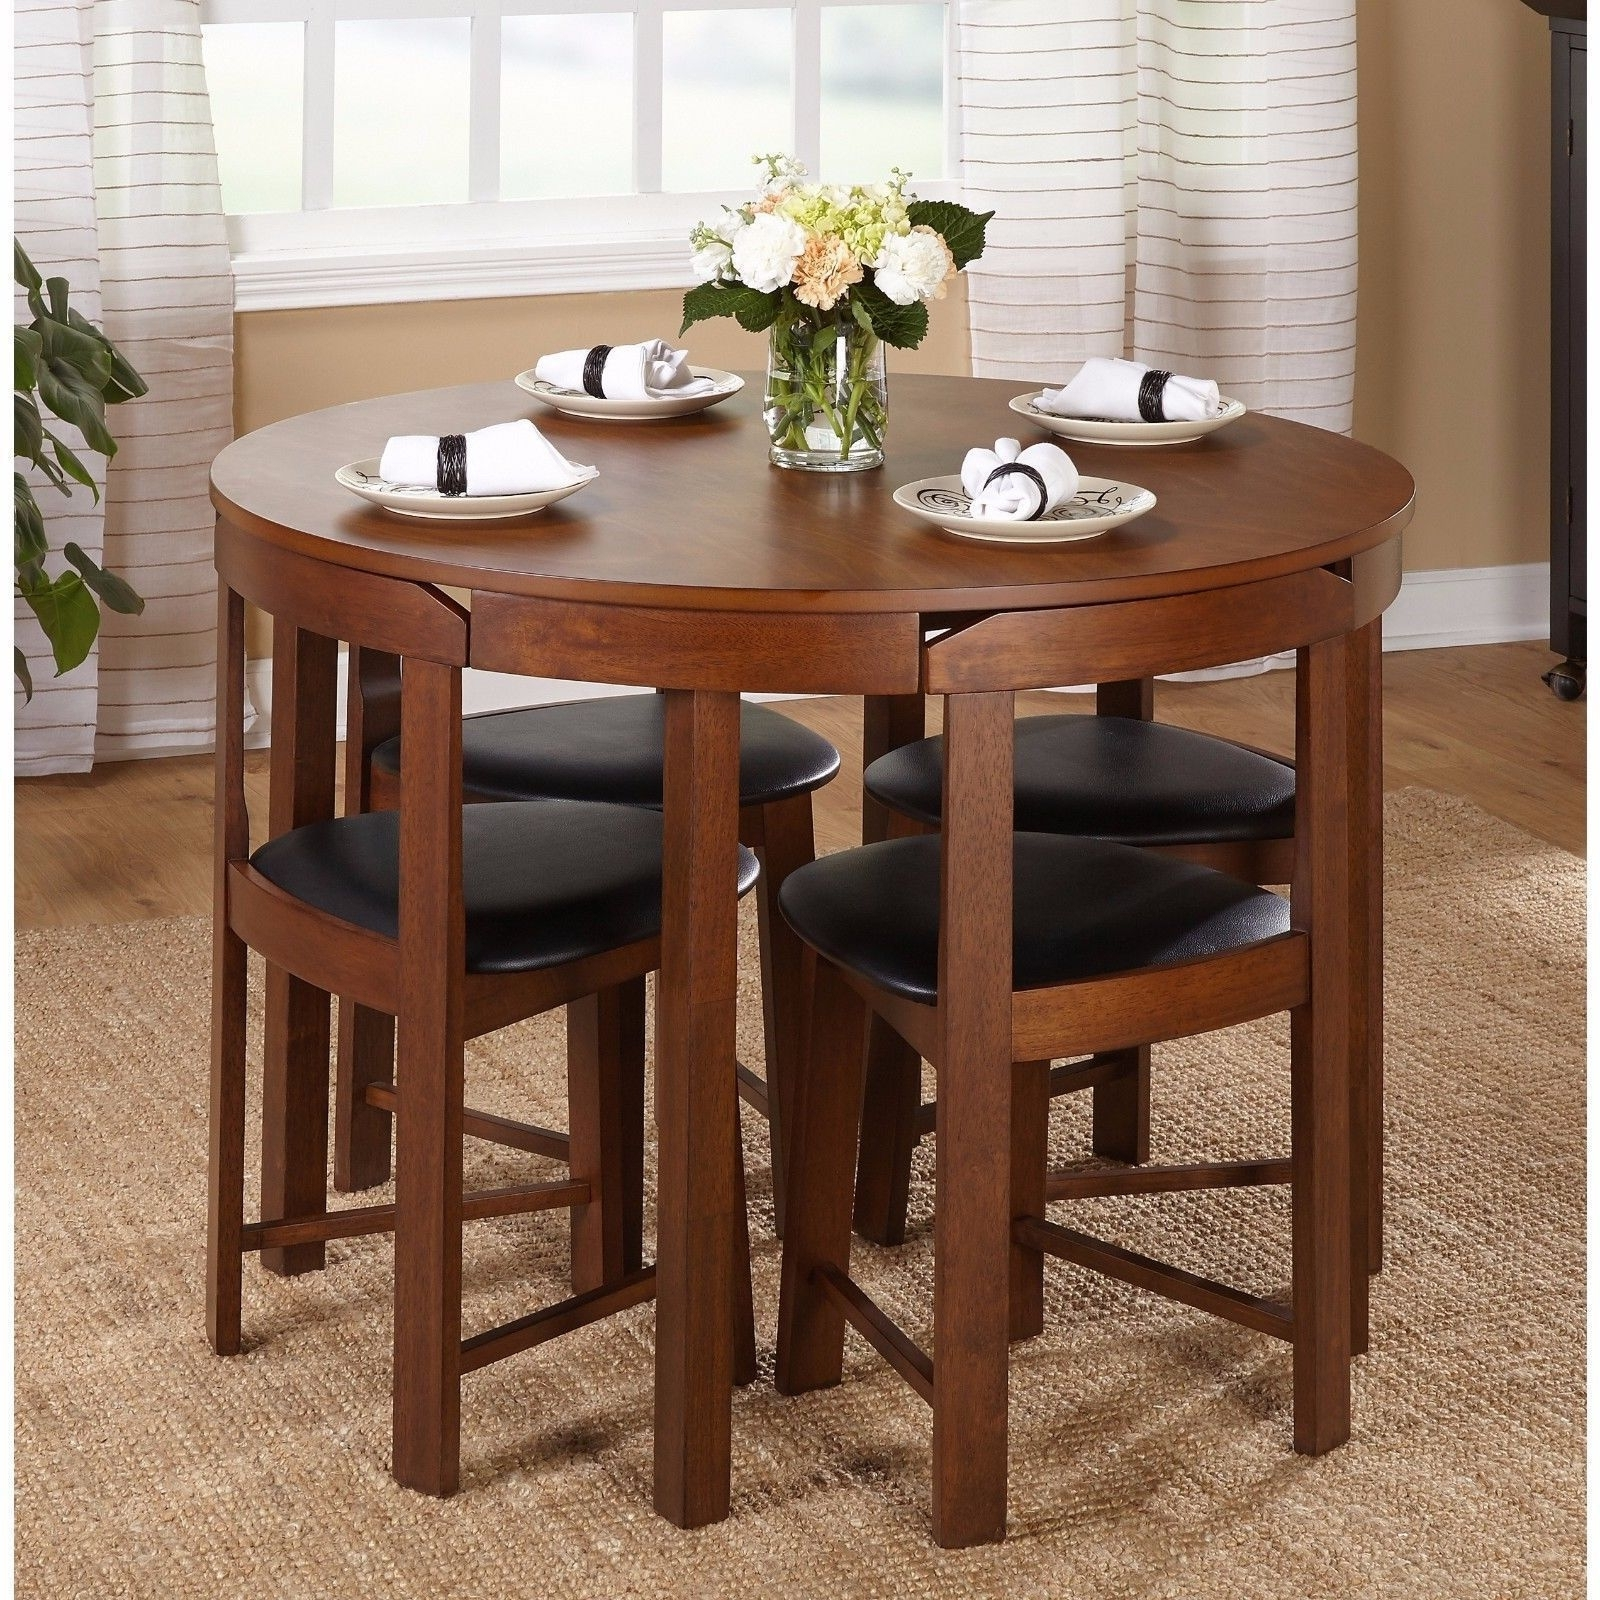 Small Round Dining Table With 4 Chairs Within Newest Dining Table Set For 4 Small Spaces Round Kitchen Table And Chairs (View 4 of 25)